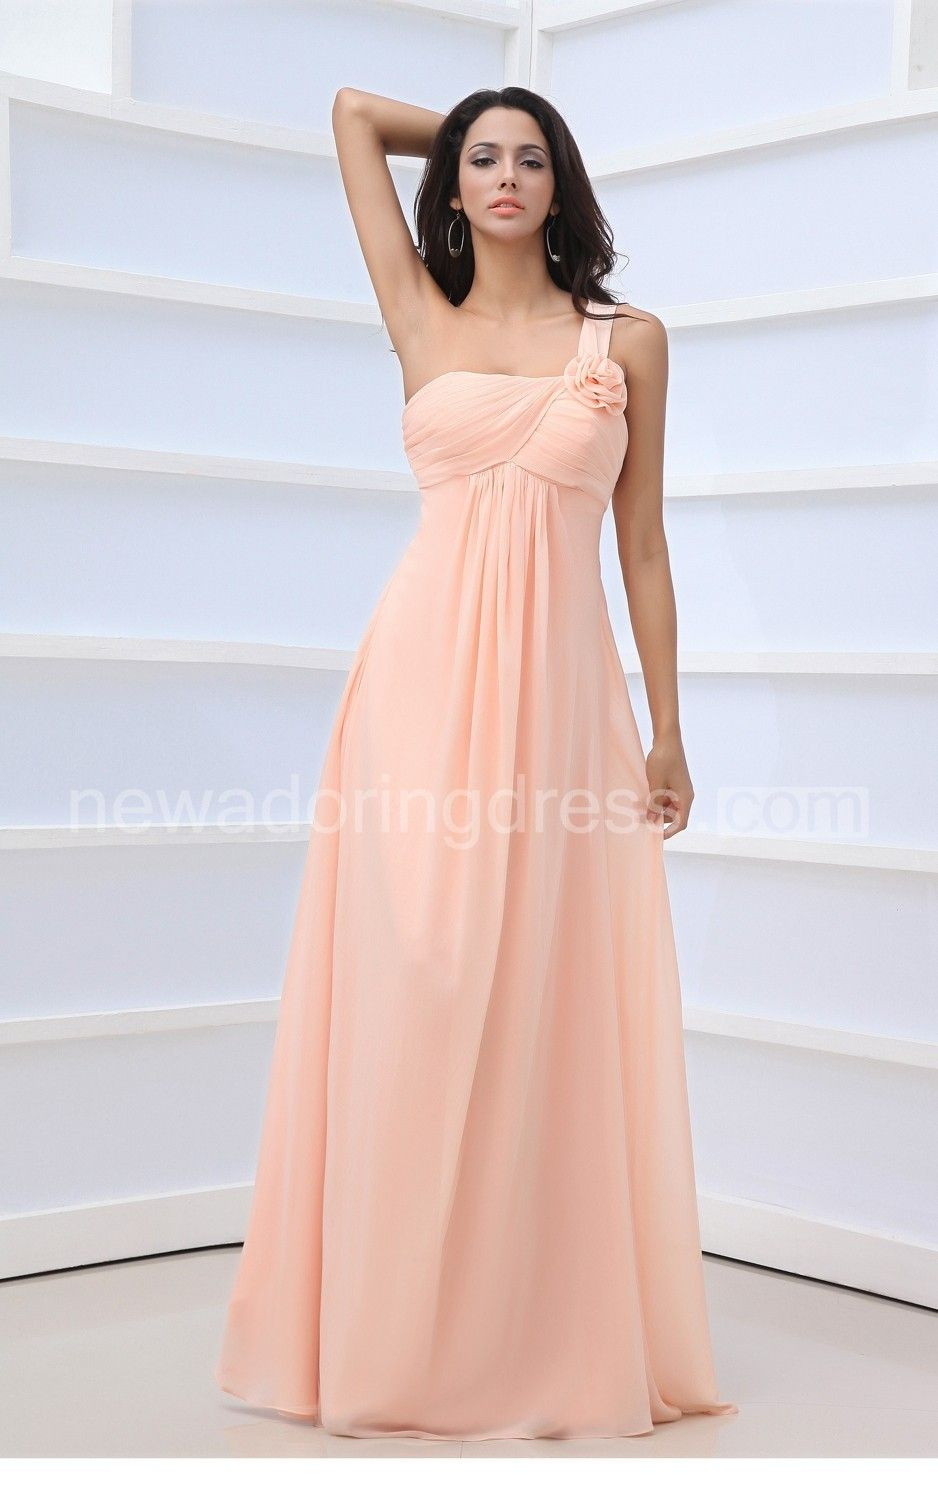 Floral crisscross draping dress with single strap long bridesmaid